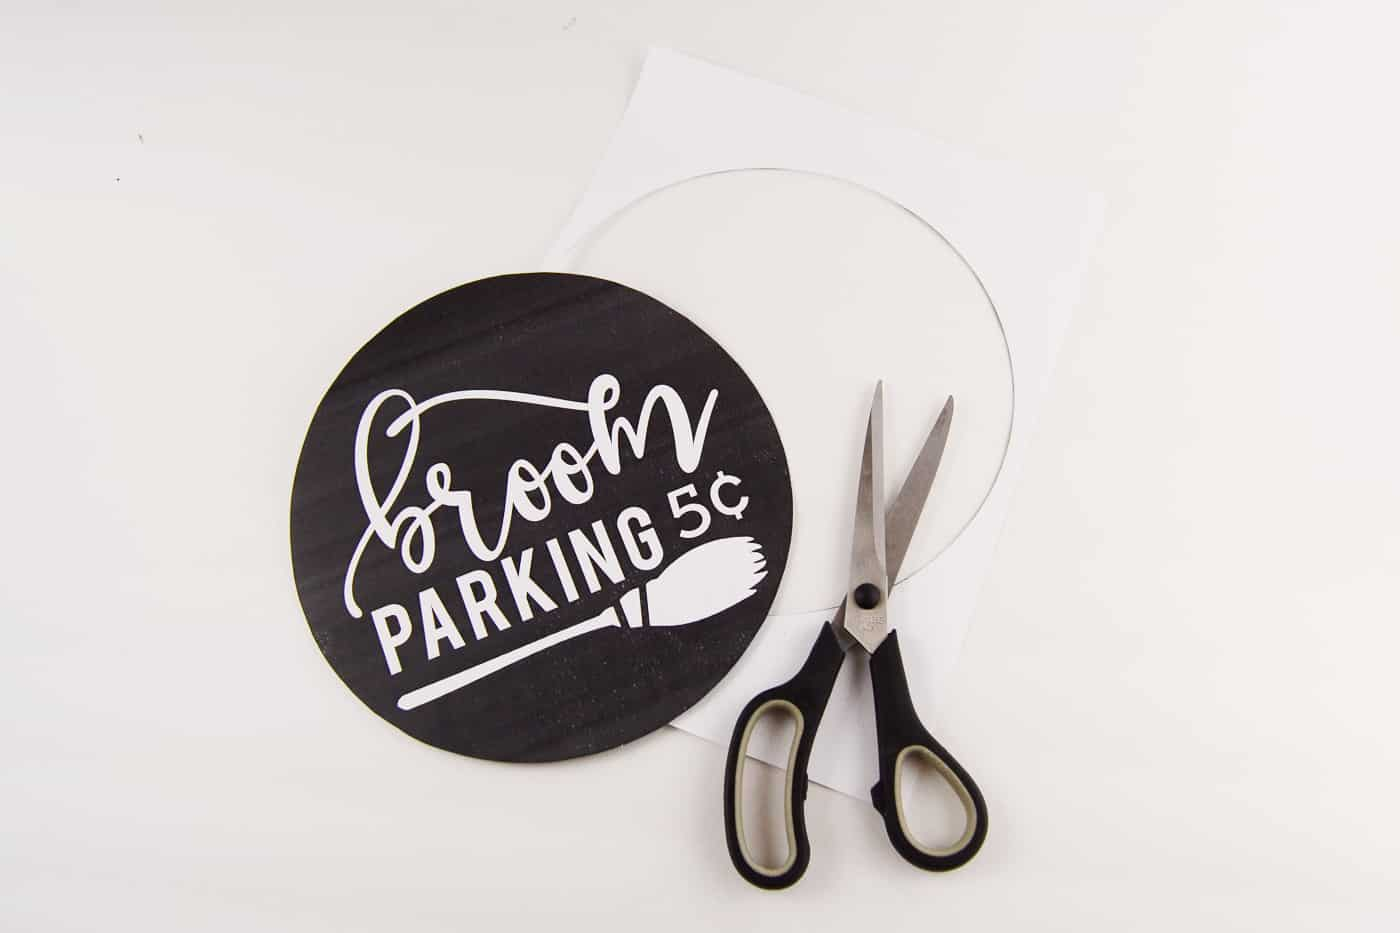 Broom parking printable cut out with a pair of scissors